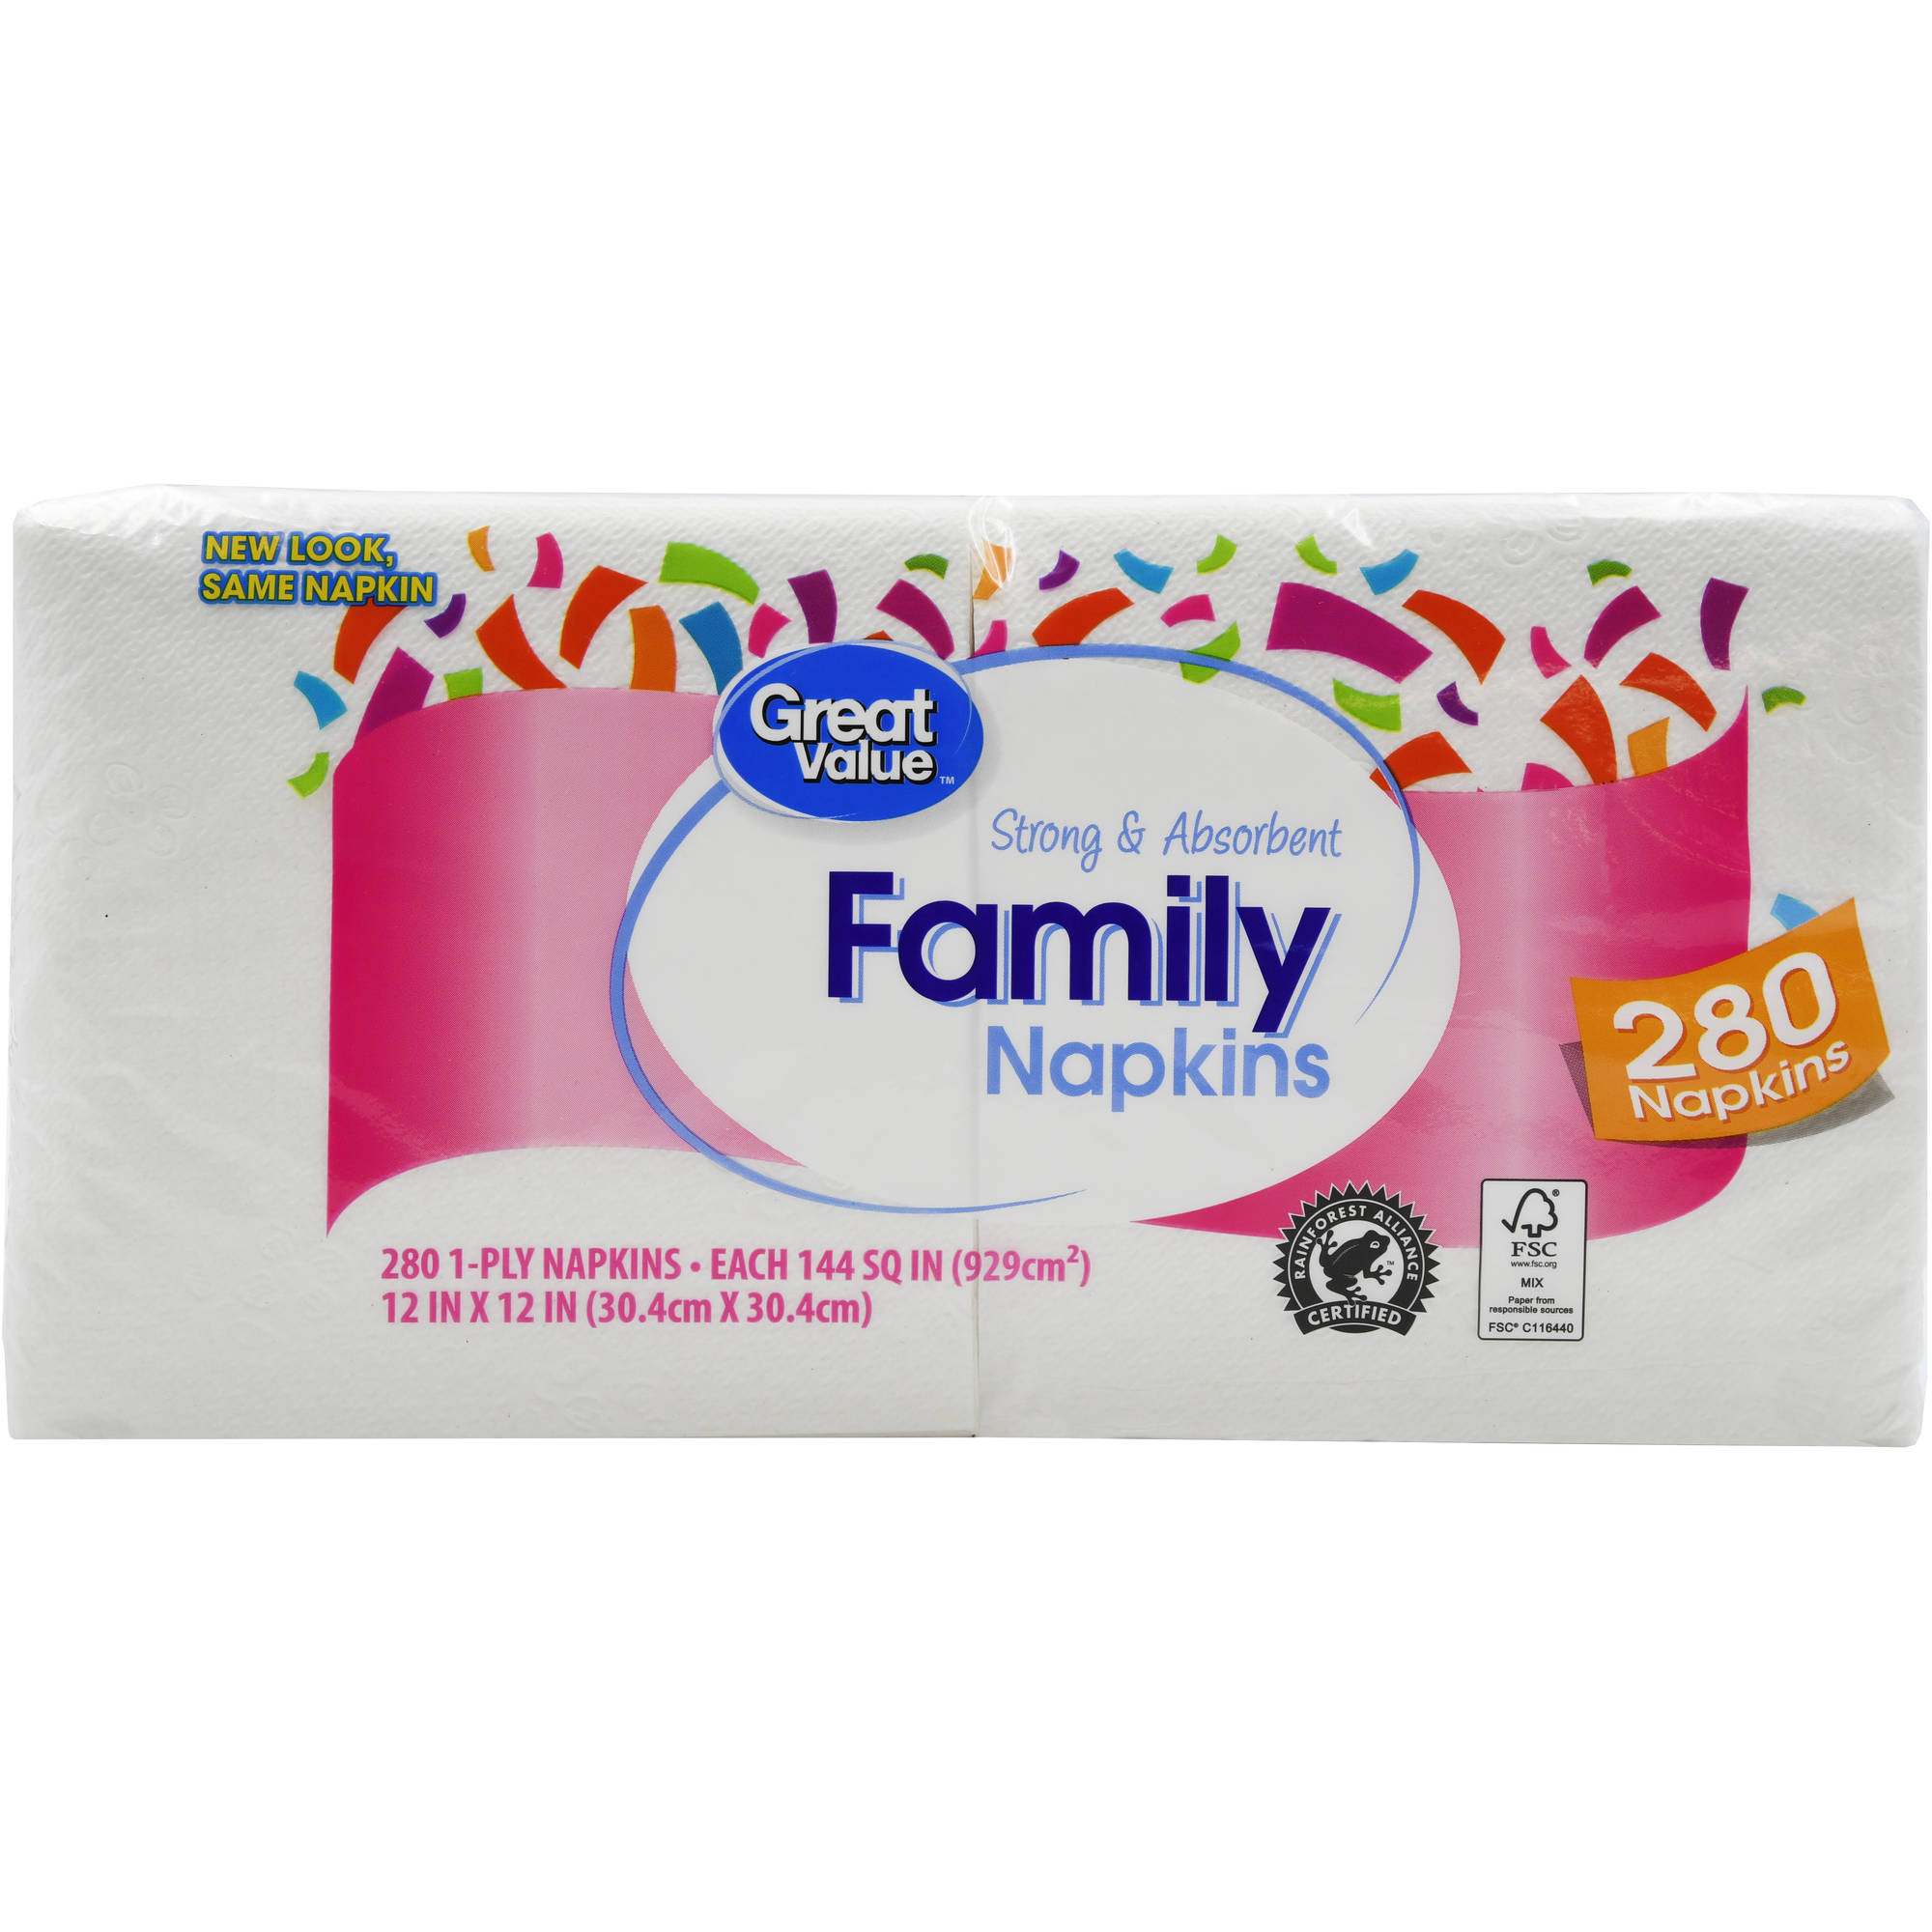 Family Napkins, 280 count